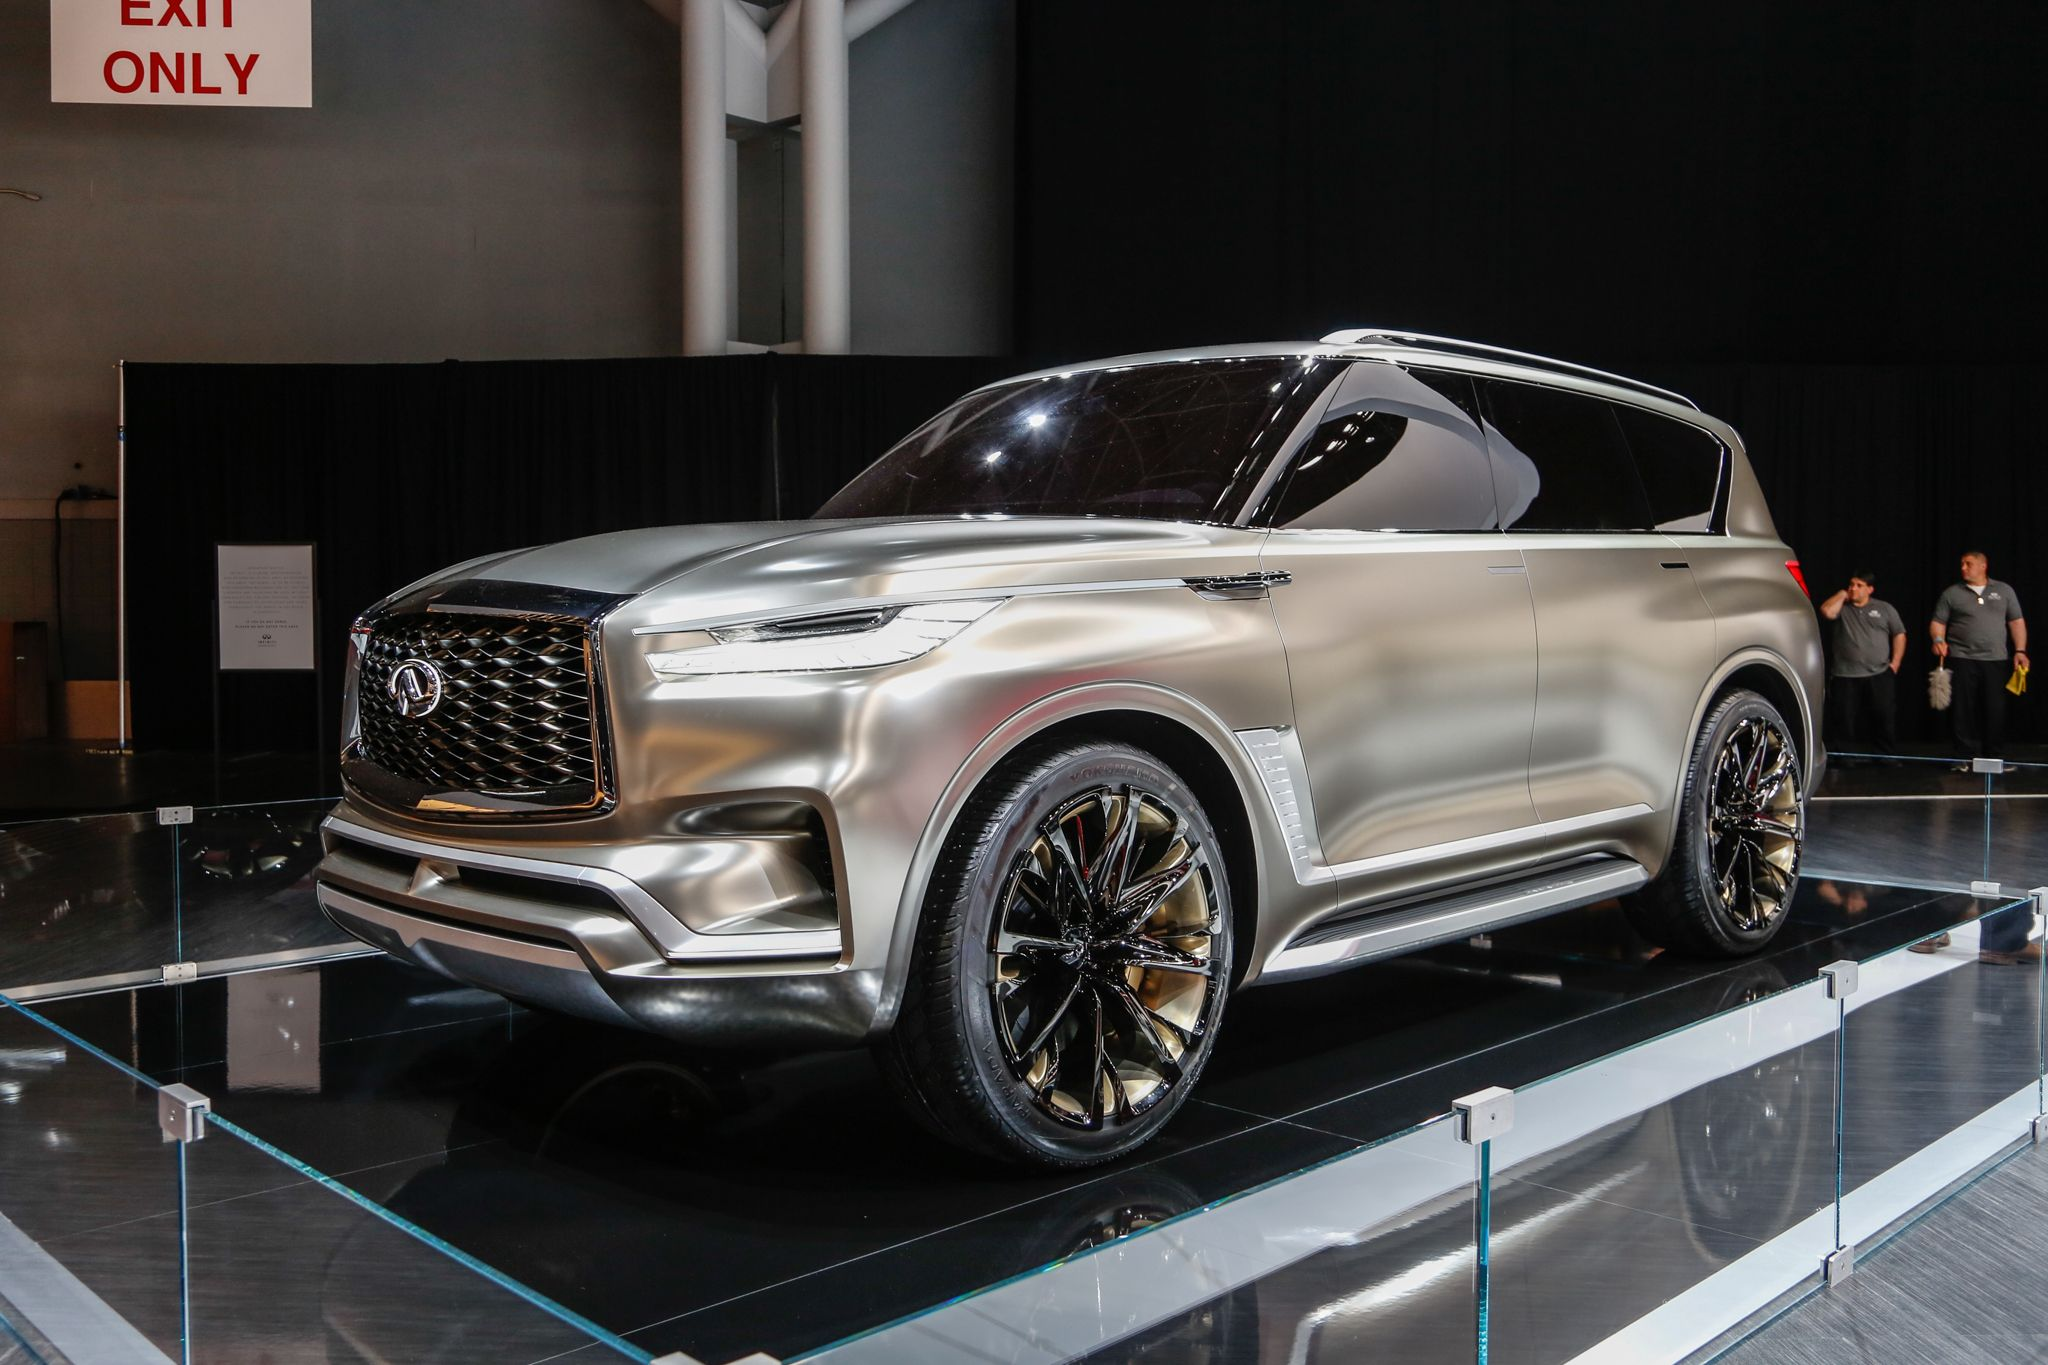 The Infiniti Qx80 Monograph Concept Infiniti Officially Revealed On The Eve Of The 2017 New York International Auto Show Infiniti Suv Suv For Sale